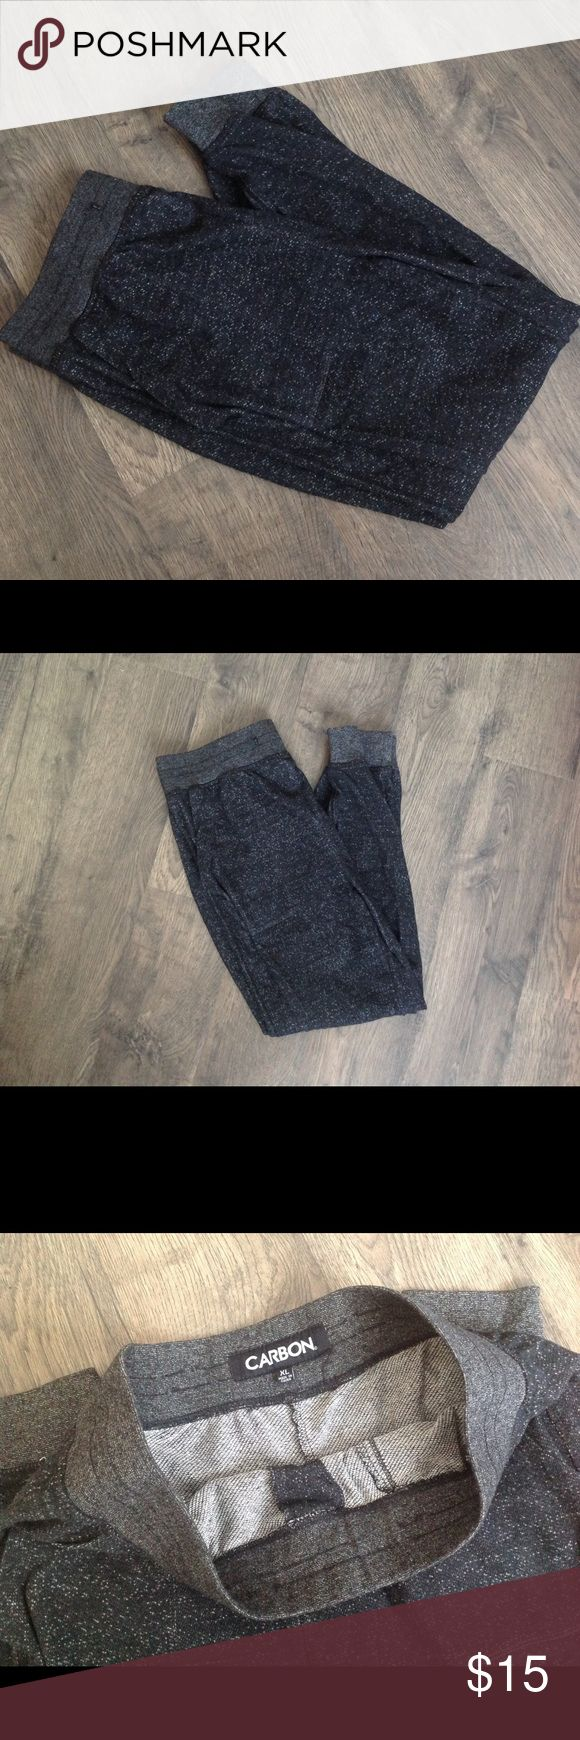 Men's Lightweight Joggers, Sweatpants, XL Men's lightweight jogger sweatpants in Dark Grey, size XL. These have been worn a few times, but are still in great condition. They no longer fit my husband. Will consider any reasonable OFFERS! Carbon Pants Sweatpants & Joggers